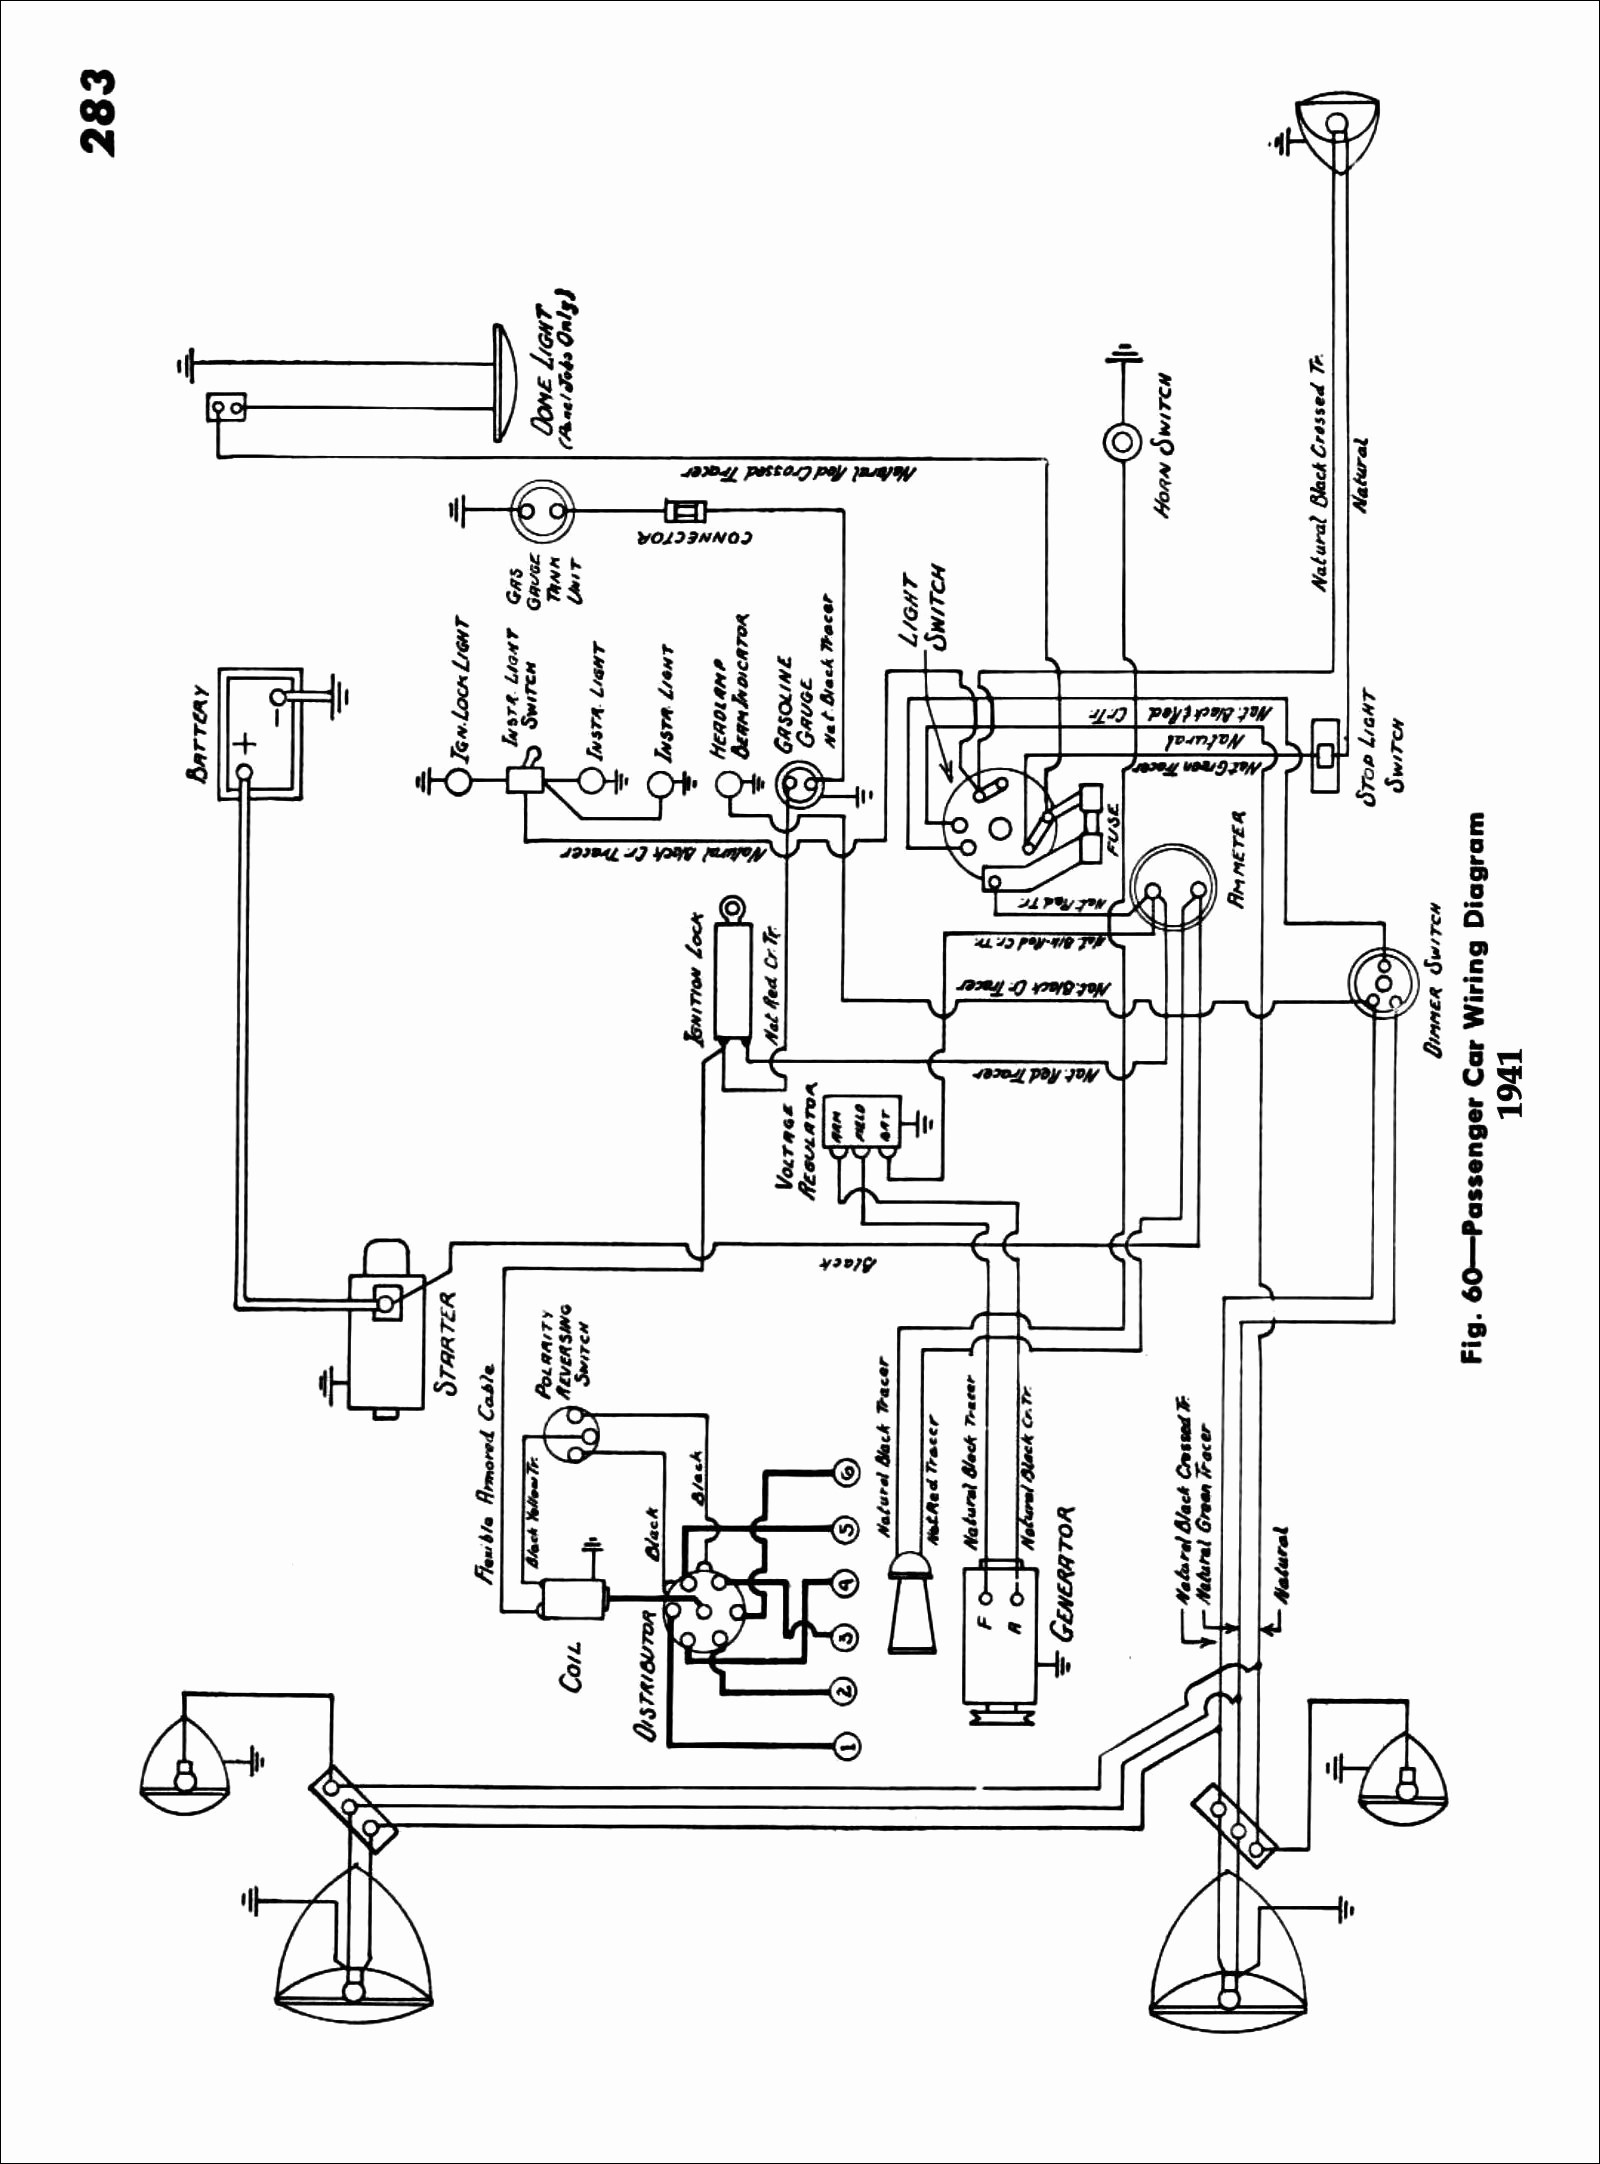 oliver 77 tractor wiring diagram oliver 880 tractor wiring diagram oliver 77 wiring diagram - wiring diagram and schematics